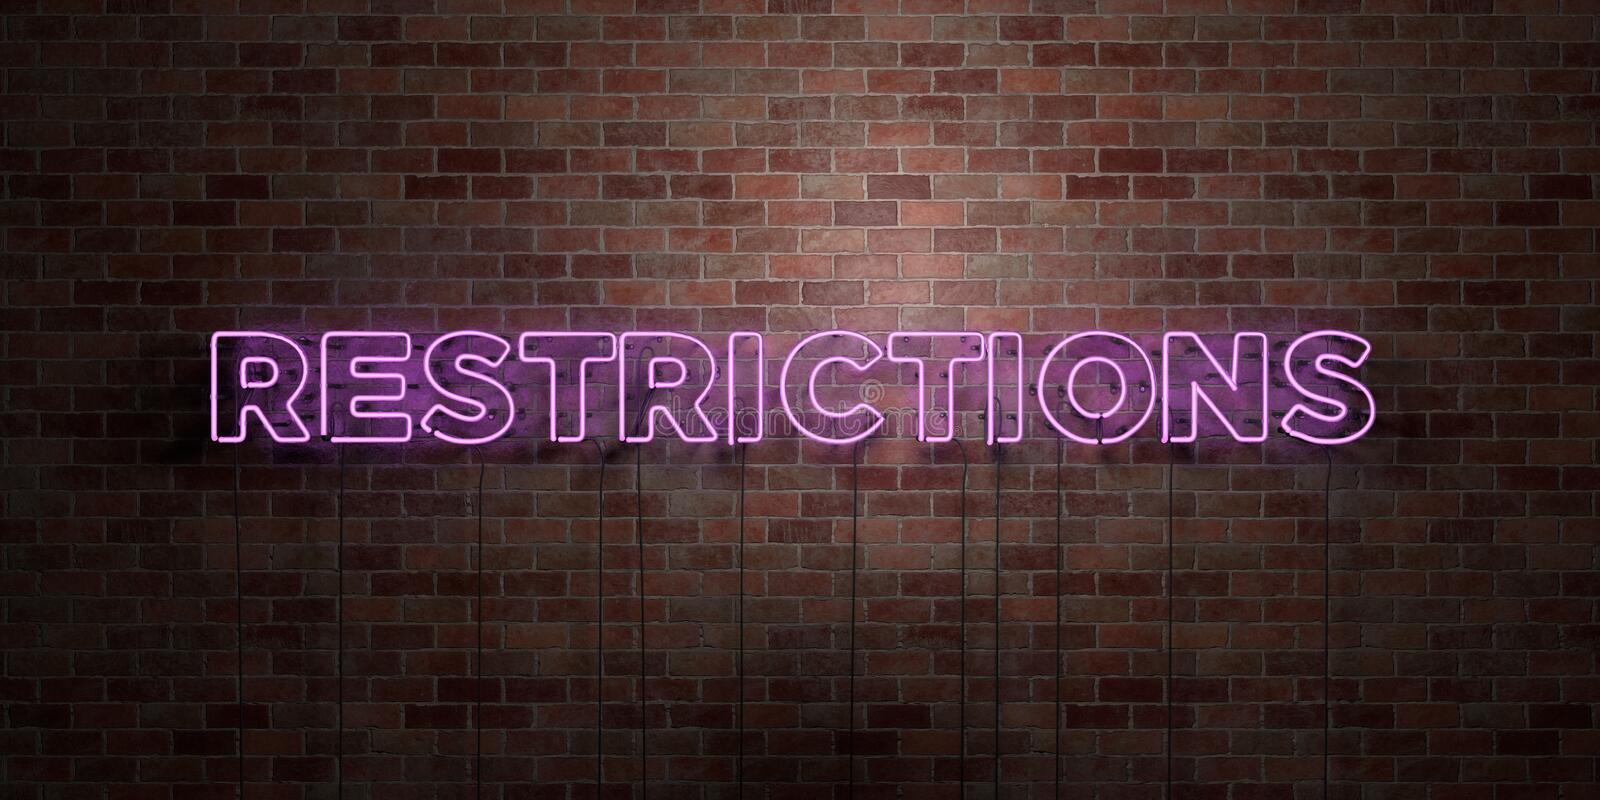 RESTRICTIONS - fluorescent Neon tube Sign on brickwork - Front view - 3D rendered royalty free stock picture. Can be used for online banner ads and direct vector illustration